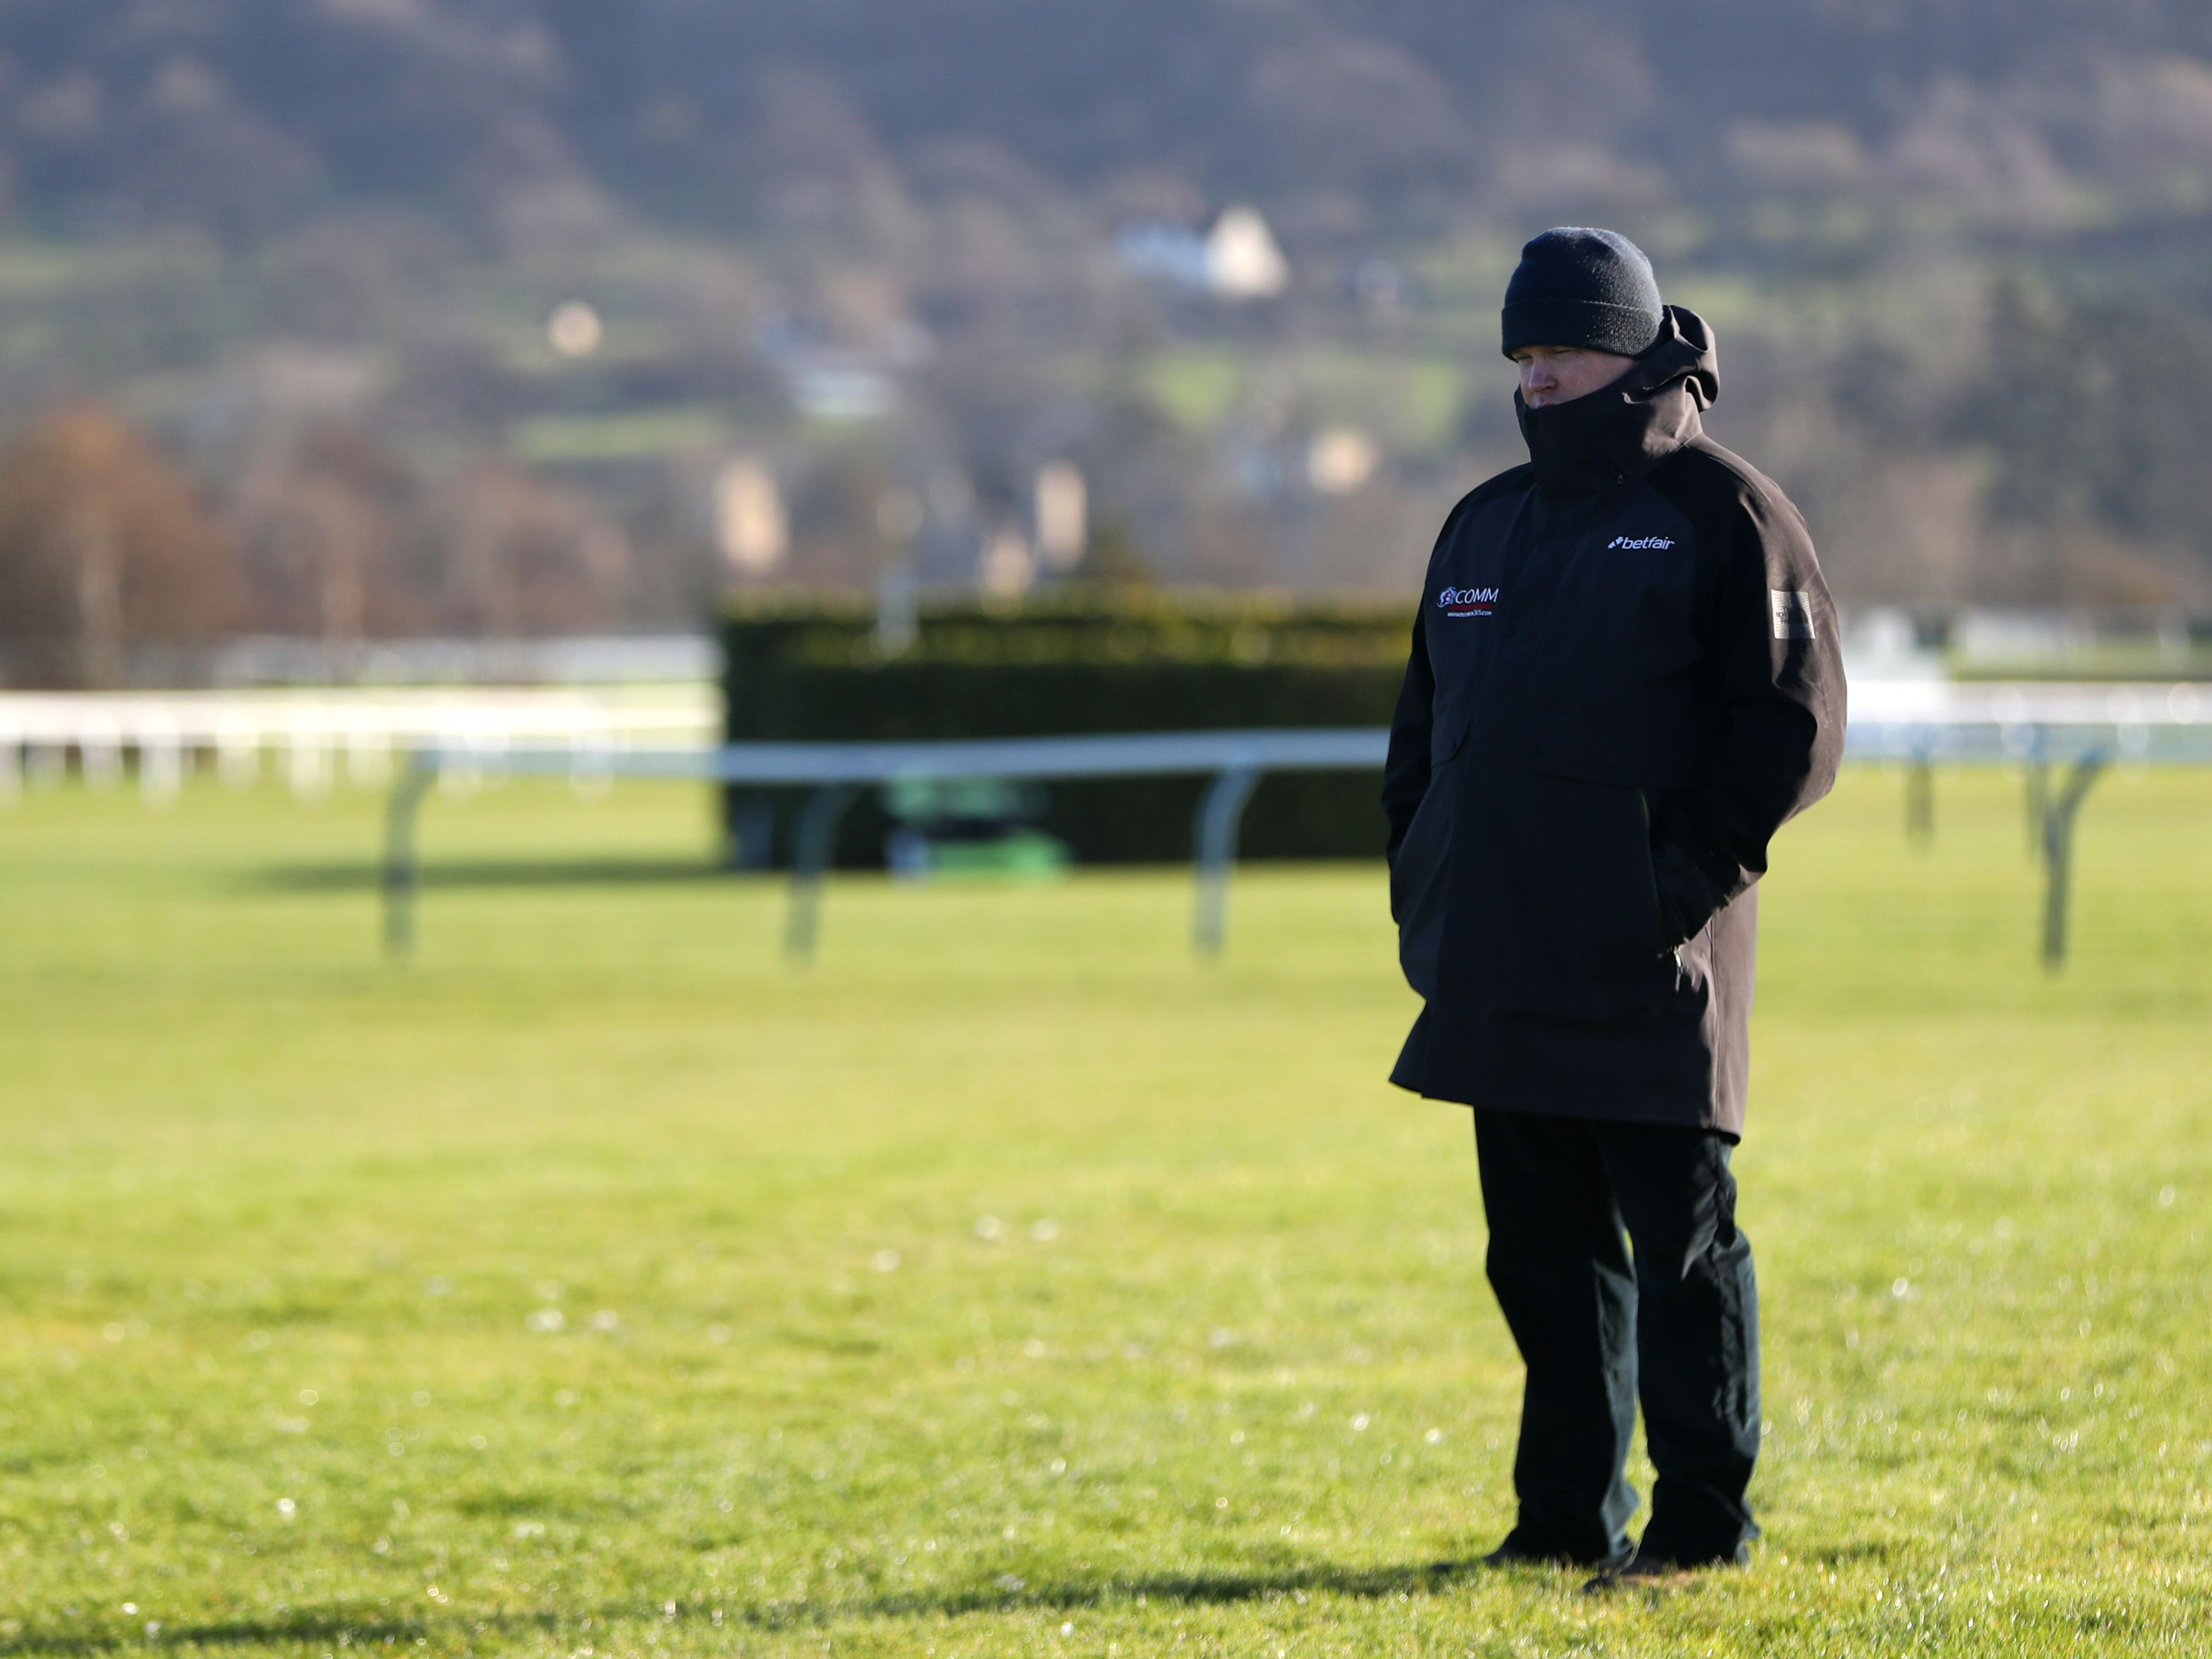 Britain's National Trainers Federation has reacted strongly to the image posted on social media of Gordon Elliott (Simon Cooper/PA)